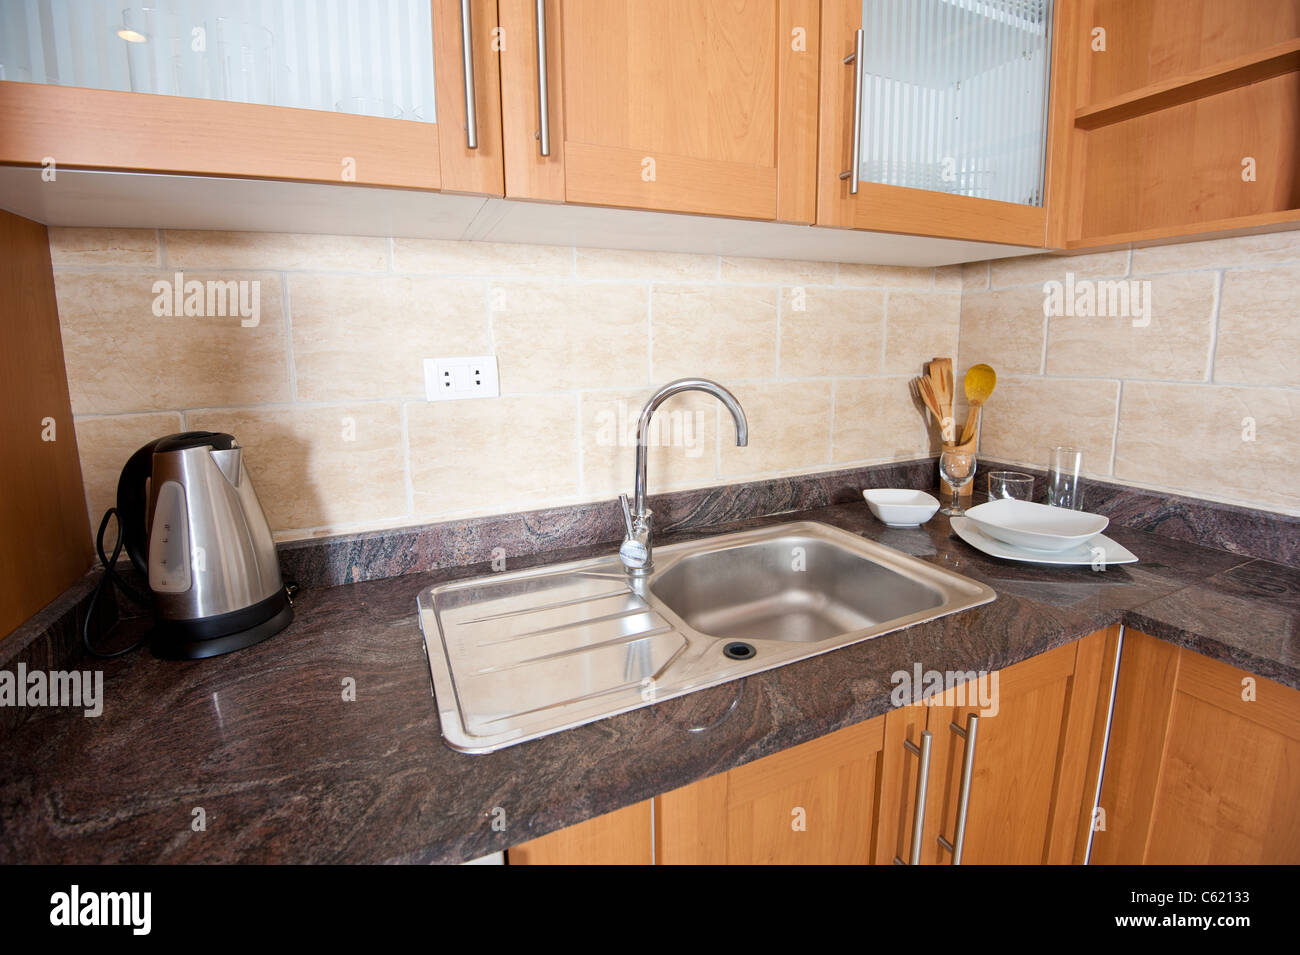 Marble counter top and sink in a modern kitchen - Stock Image